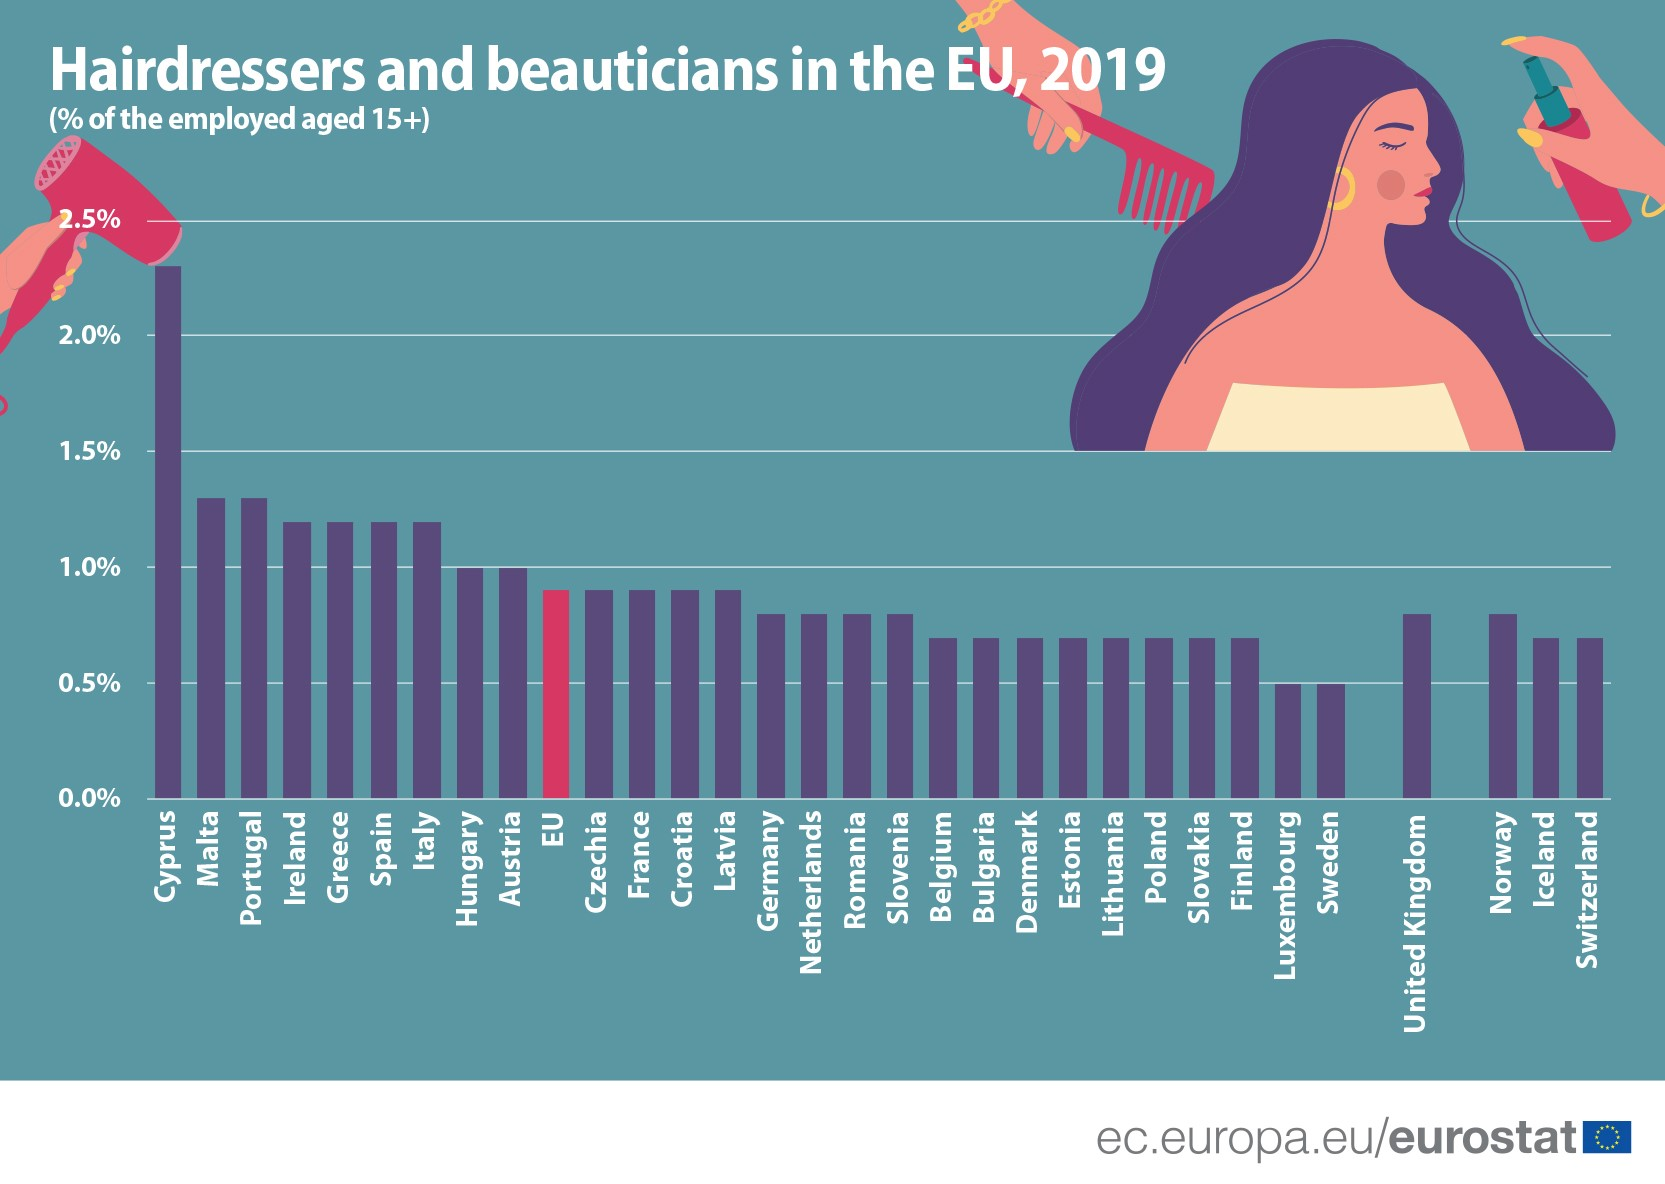 Hairdressers and beauticians in the EU